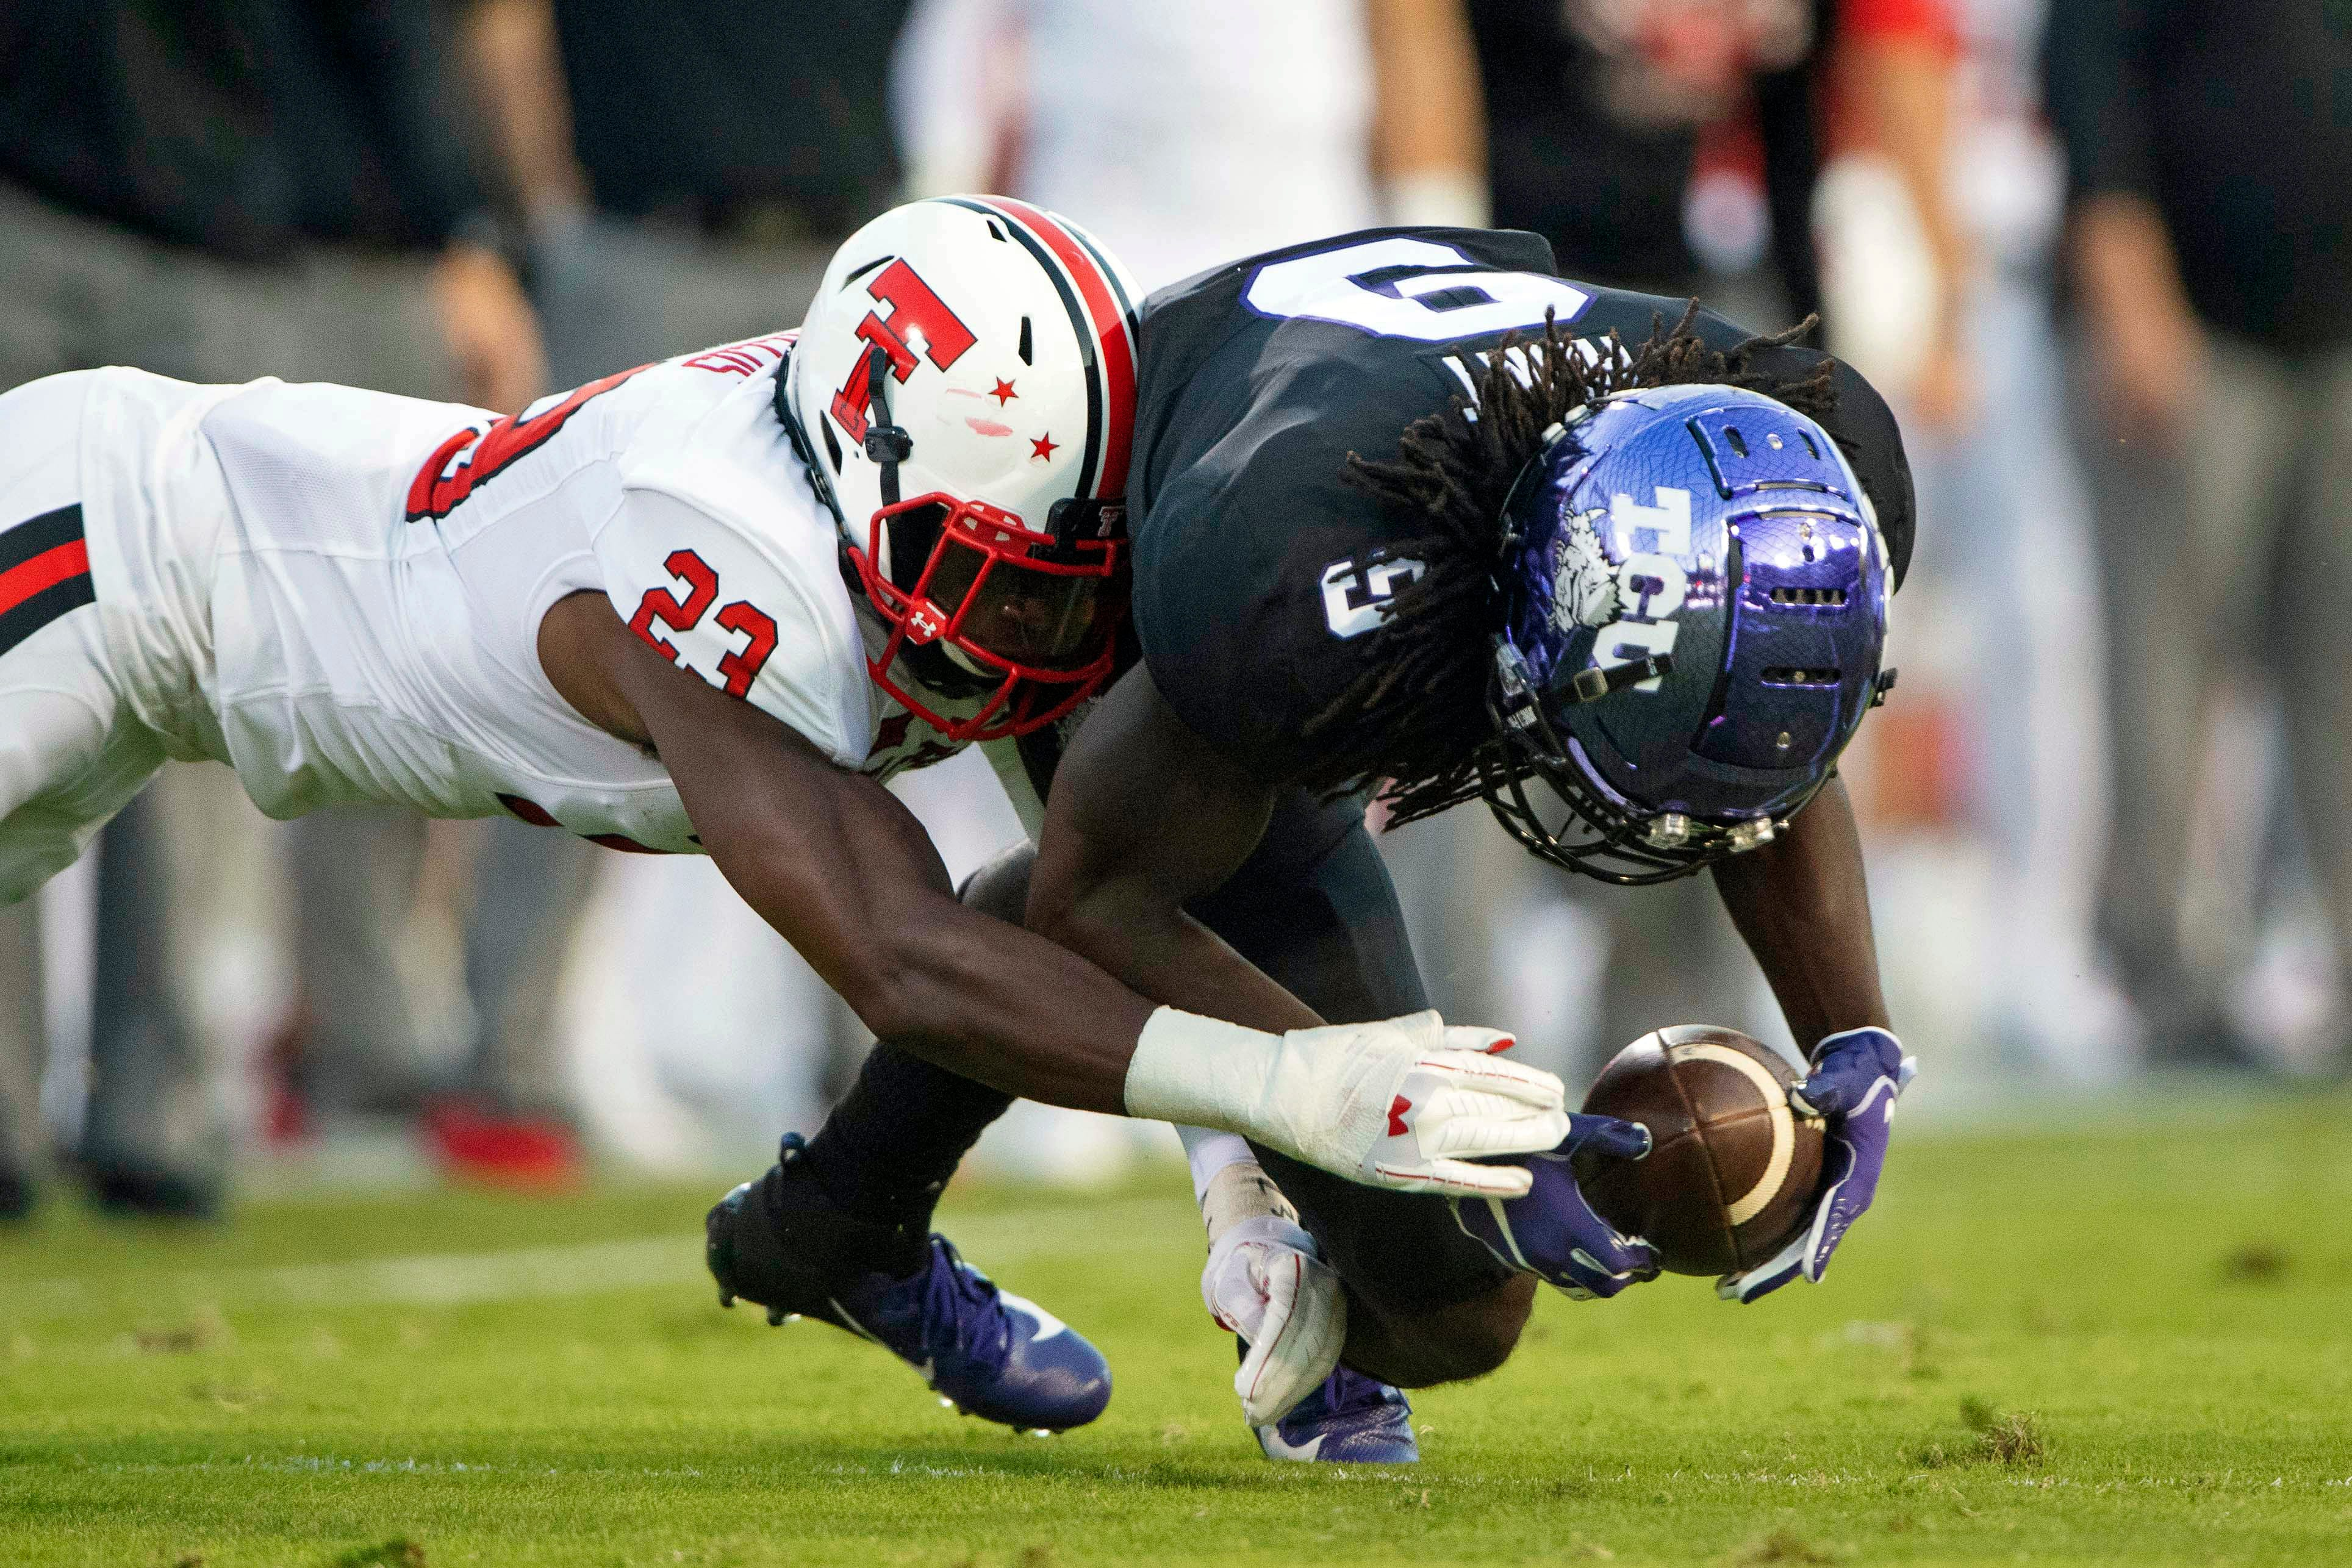 Texas Tech Football Underdog Red Raiders Try To Win 3rd In Row At Tcu